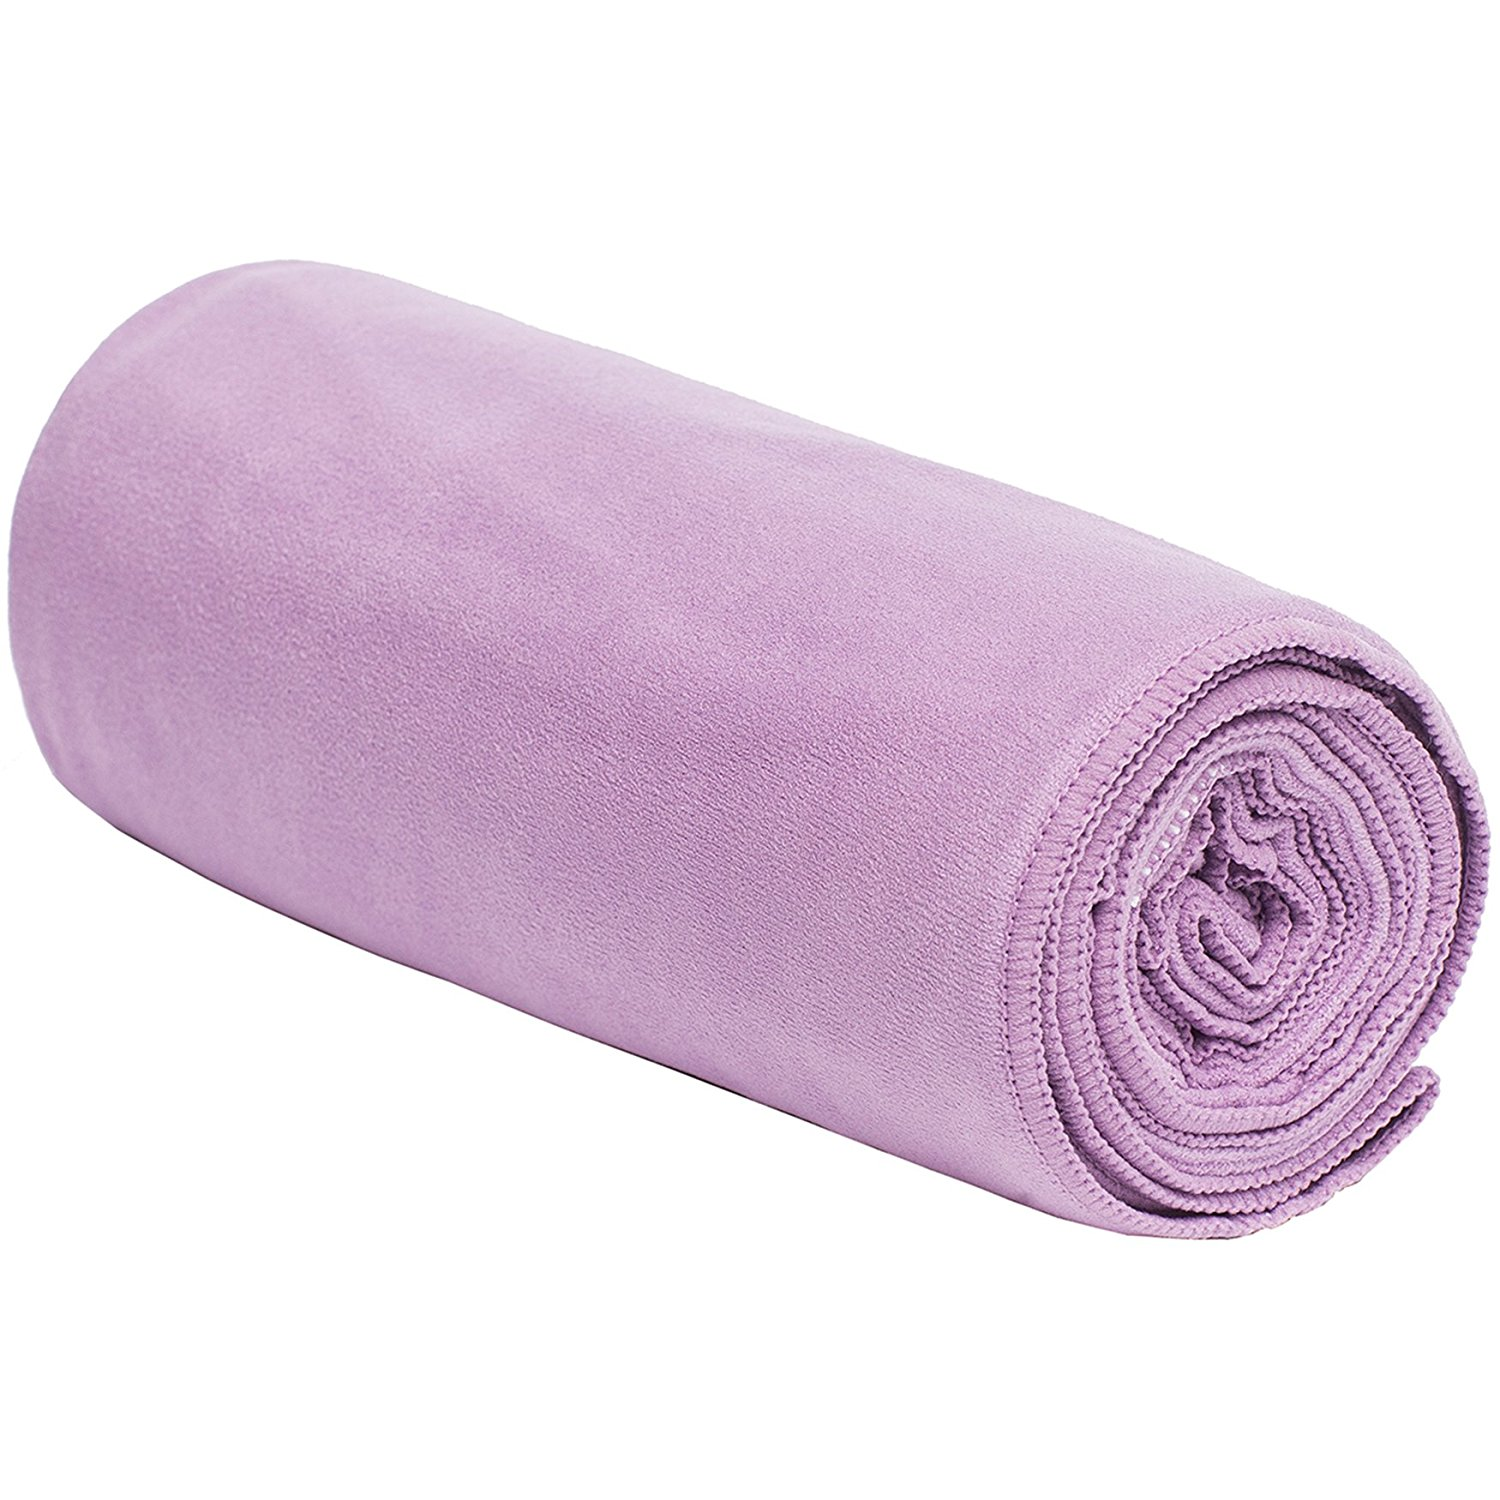 shandali gosweat hot yoga towel african violet